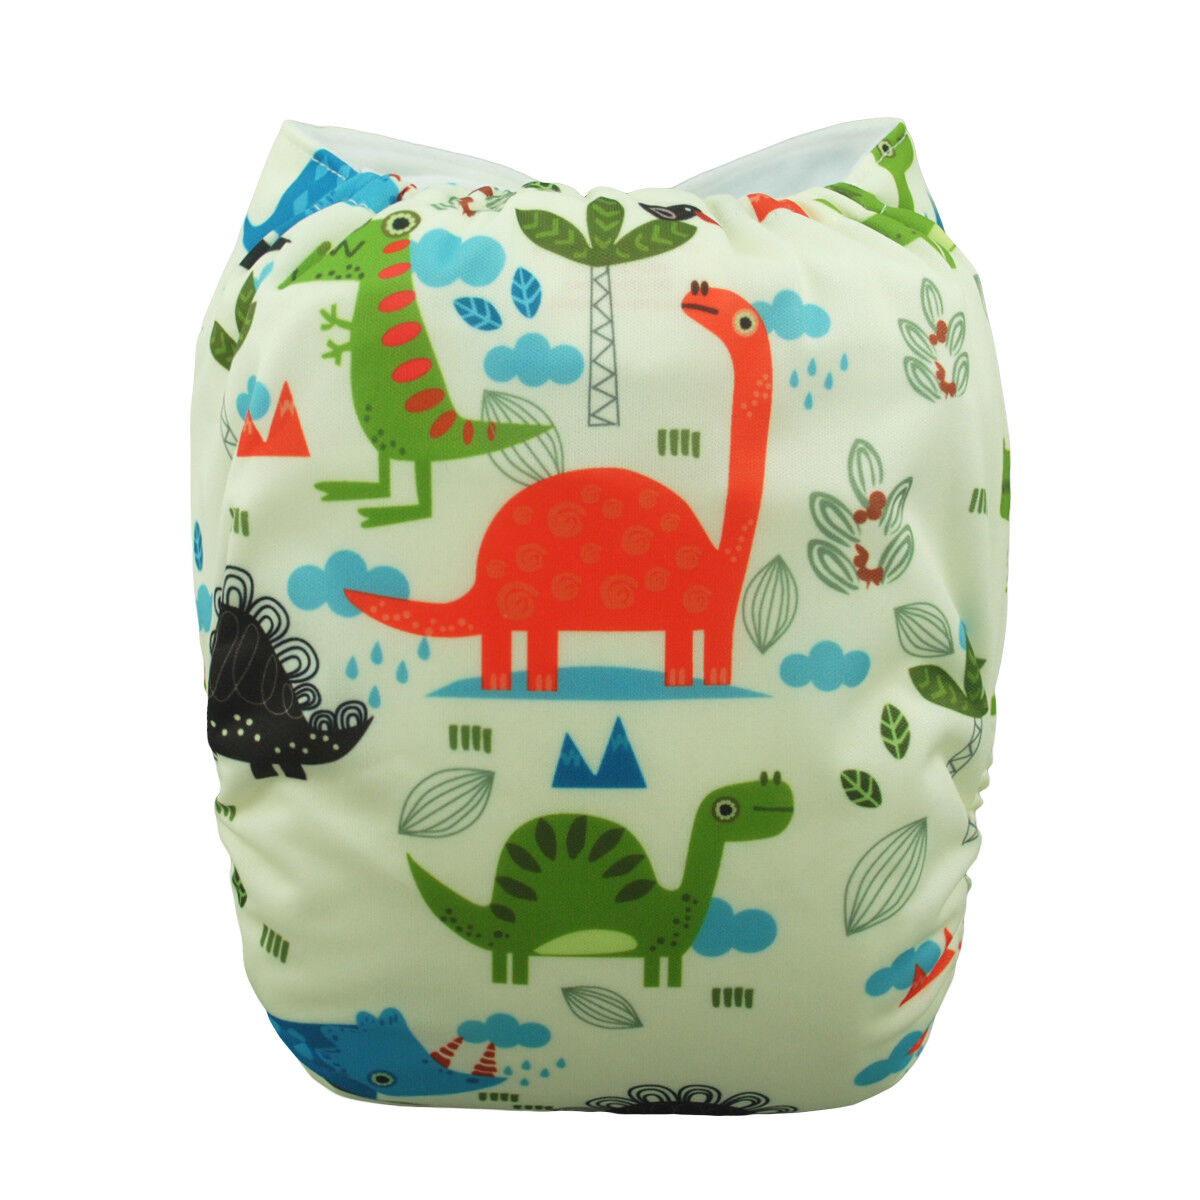 ALVABABY Reusable Baby Cloth Diapers OneSize Washable Pocket Nappies With Insert YD83